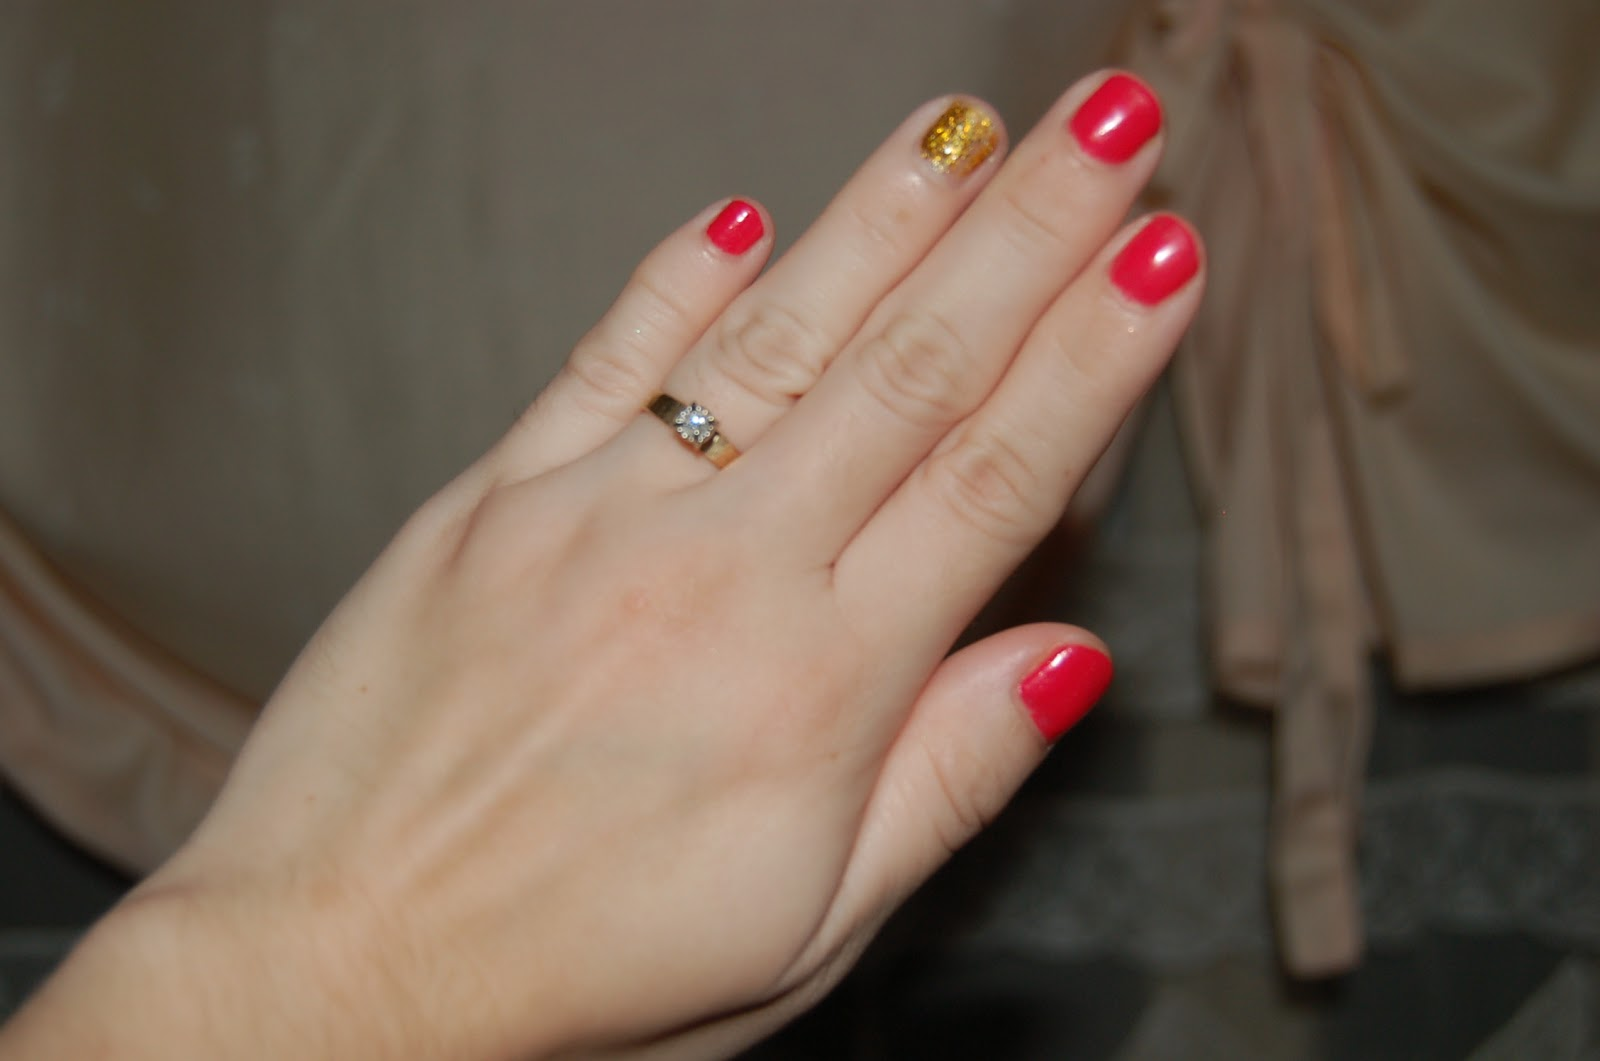 The Faysian Gold Glitter And Hot Pink Nails